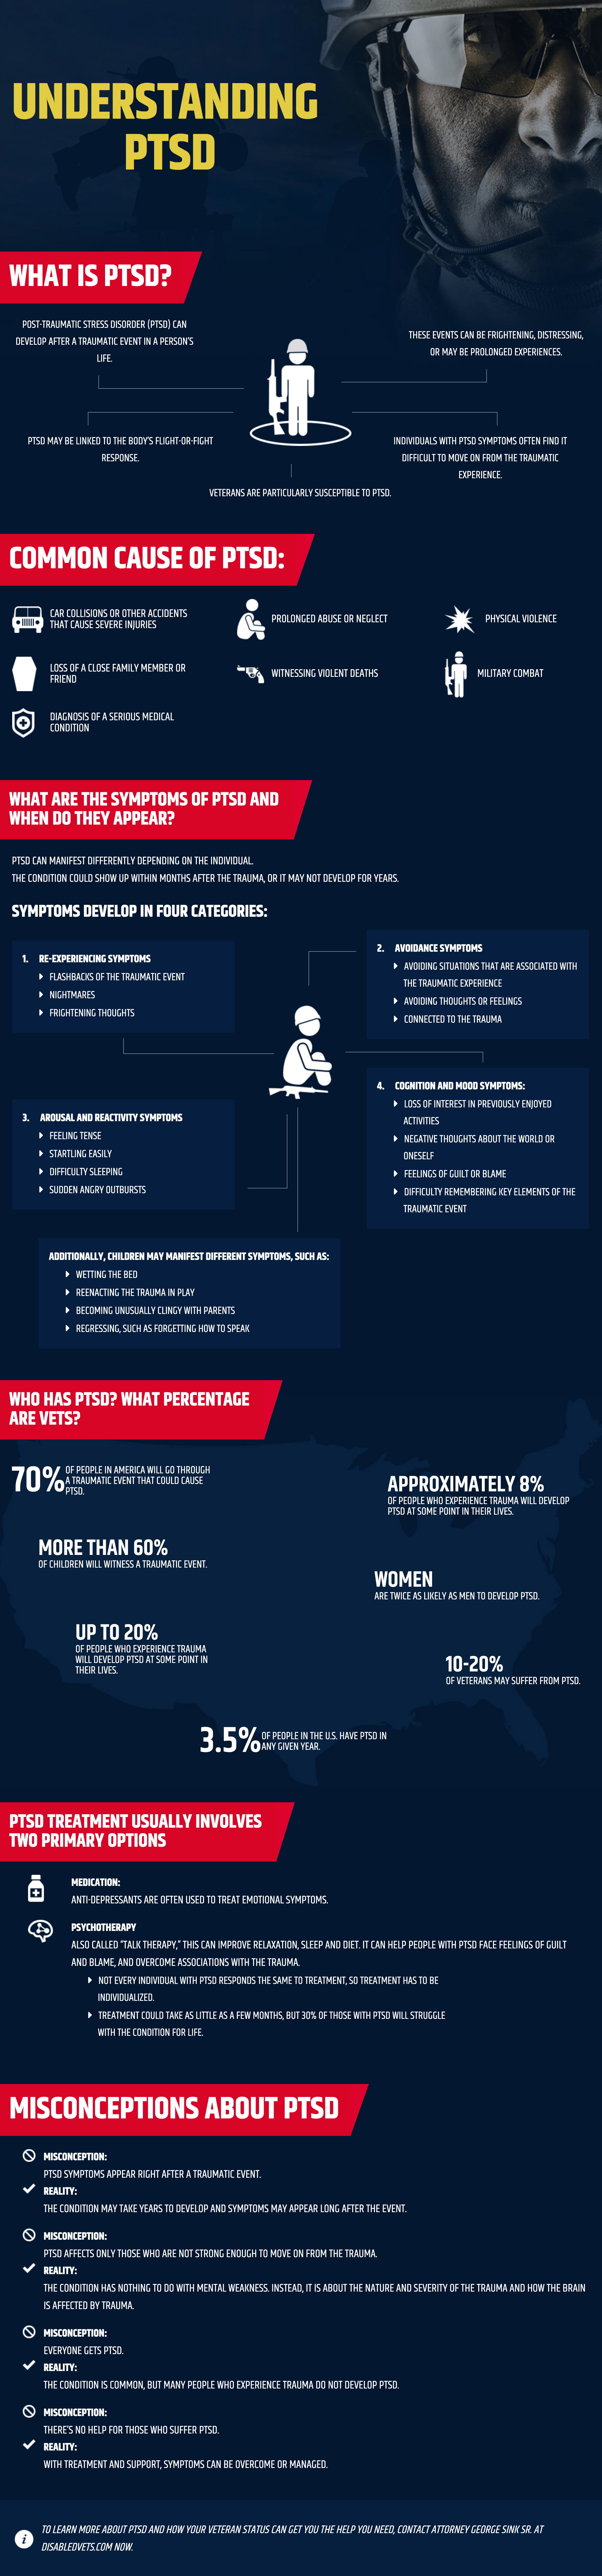 Clearing Misconceptions About Ptsd And Its Symptoms